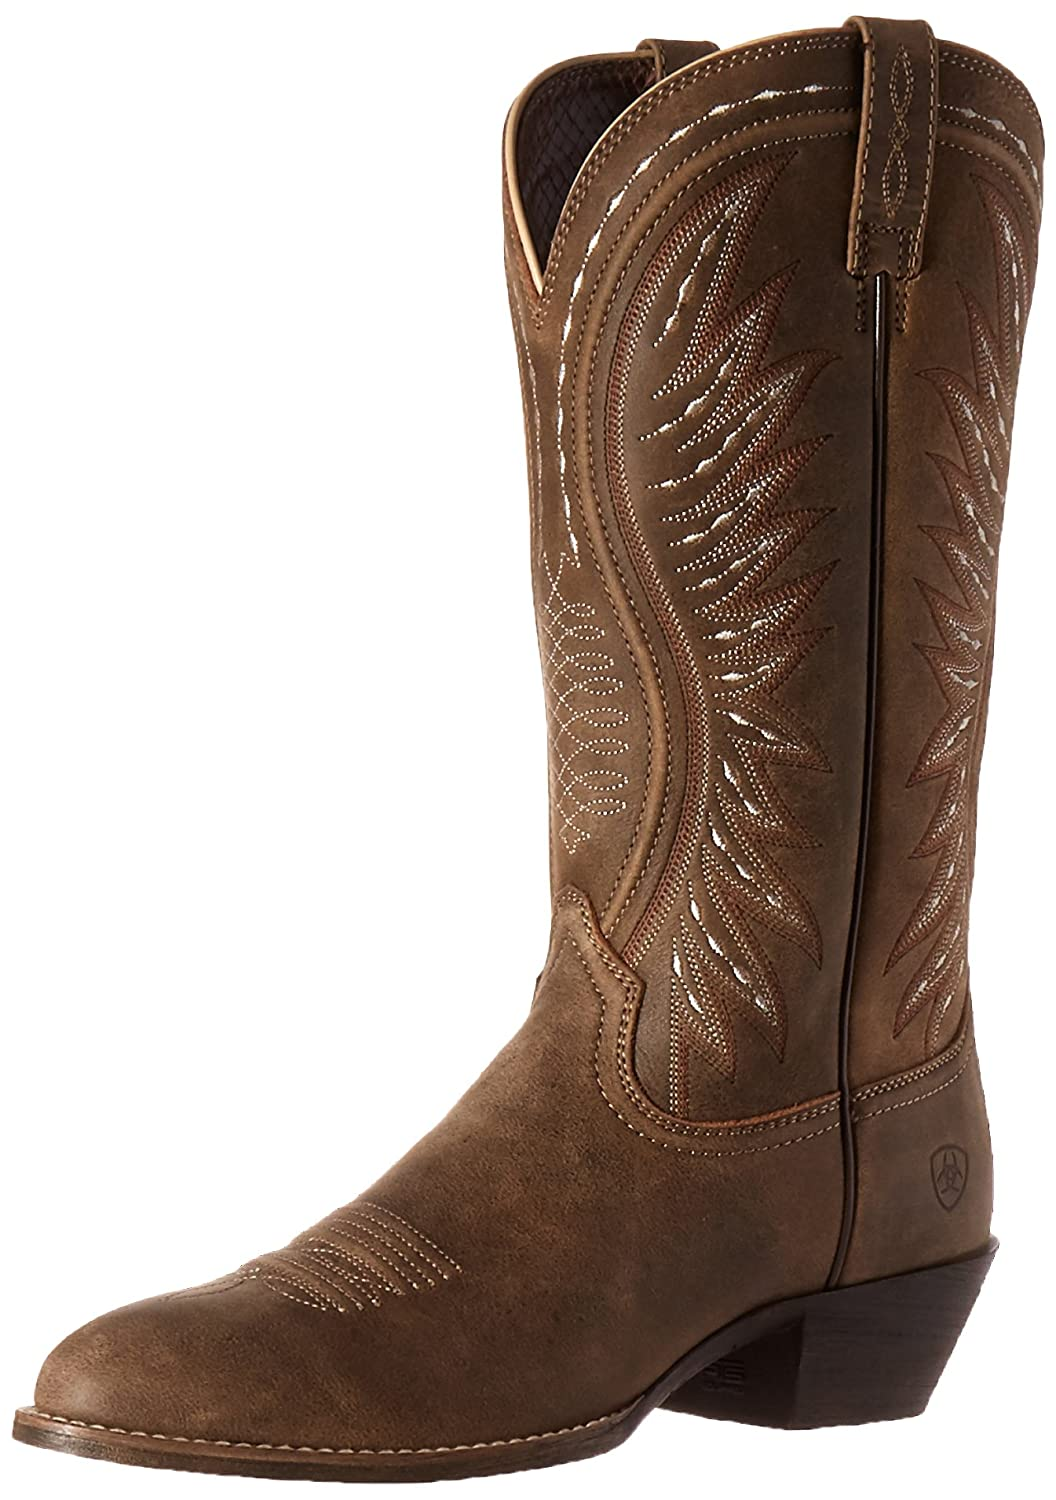 Ariat Women's Ammorette Western Boot B013WSGG4A 11 M US|Brown Bomber